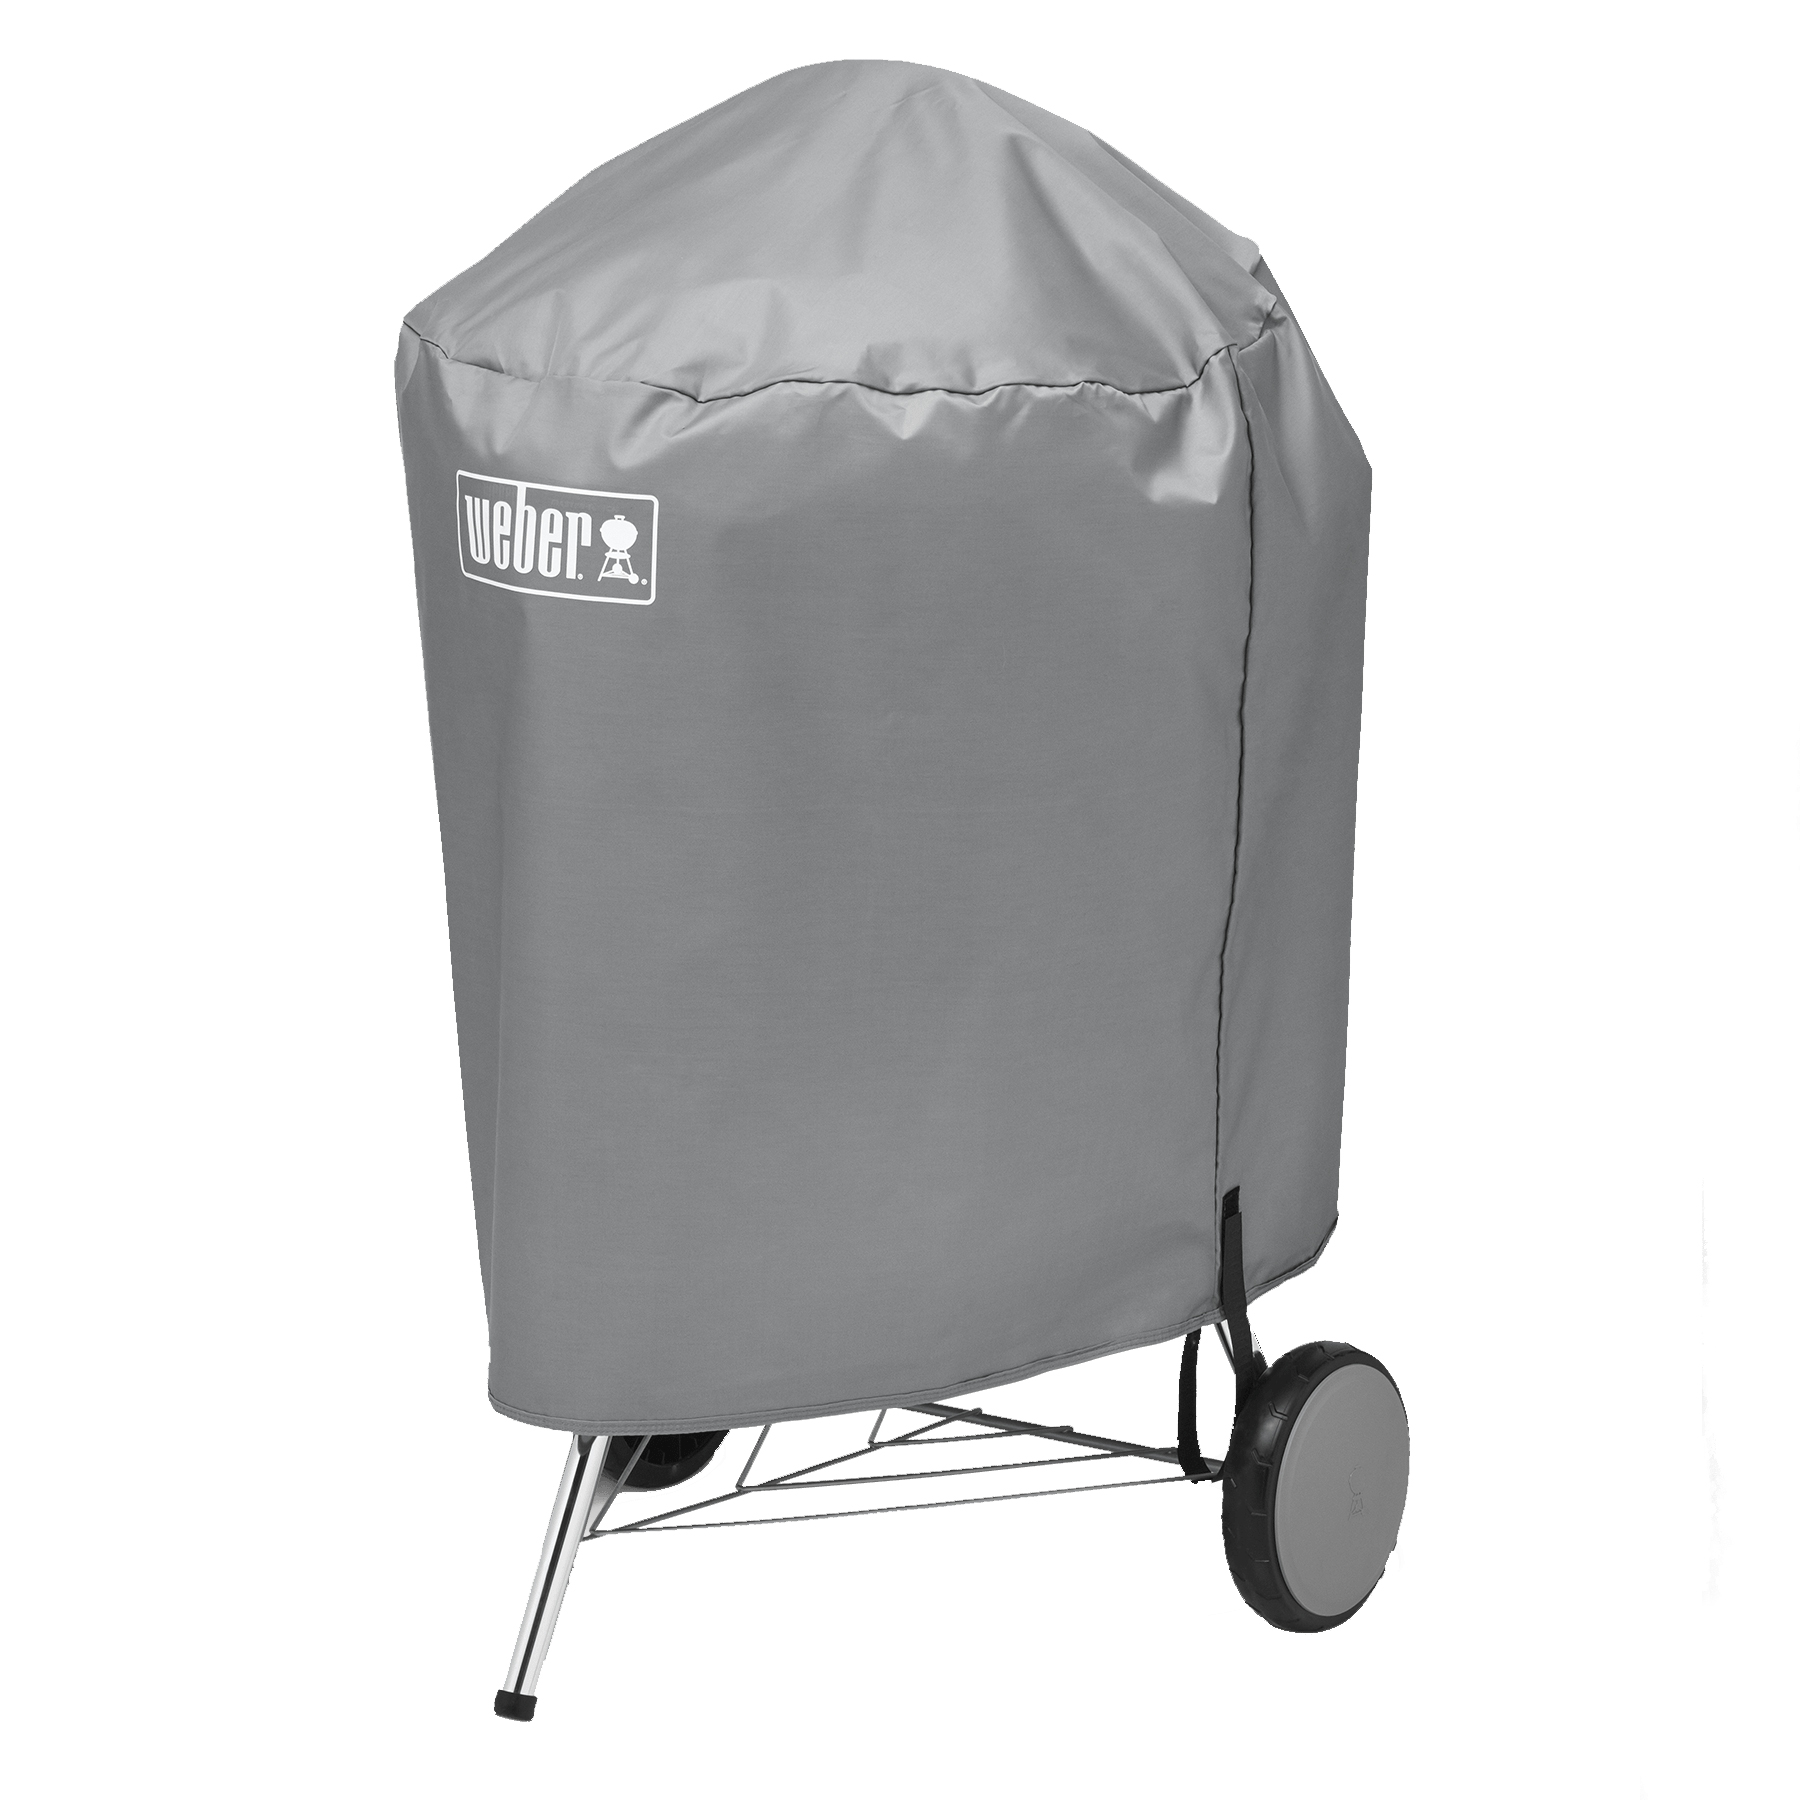 Barbecue cover- WEBER